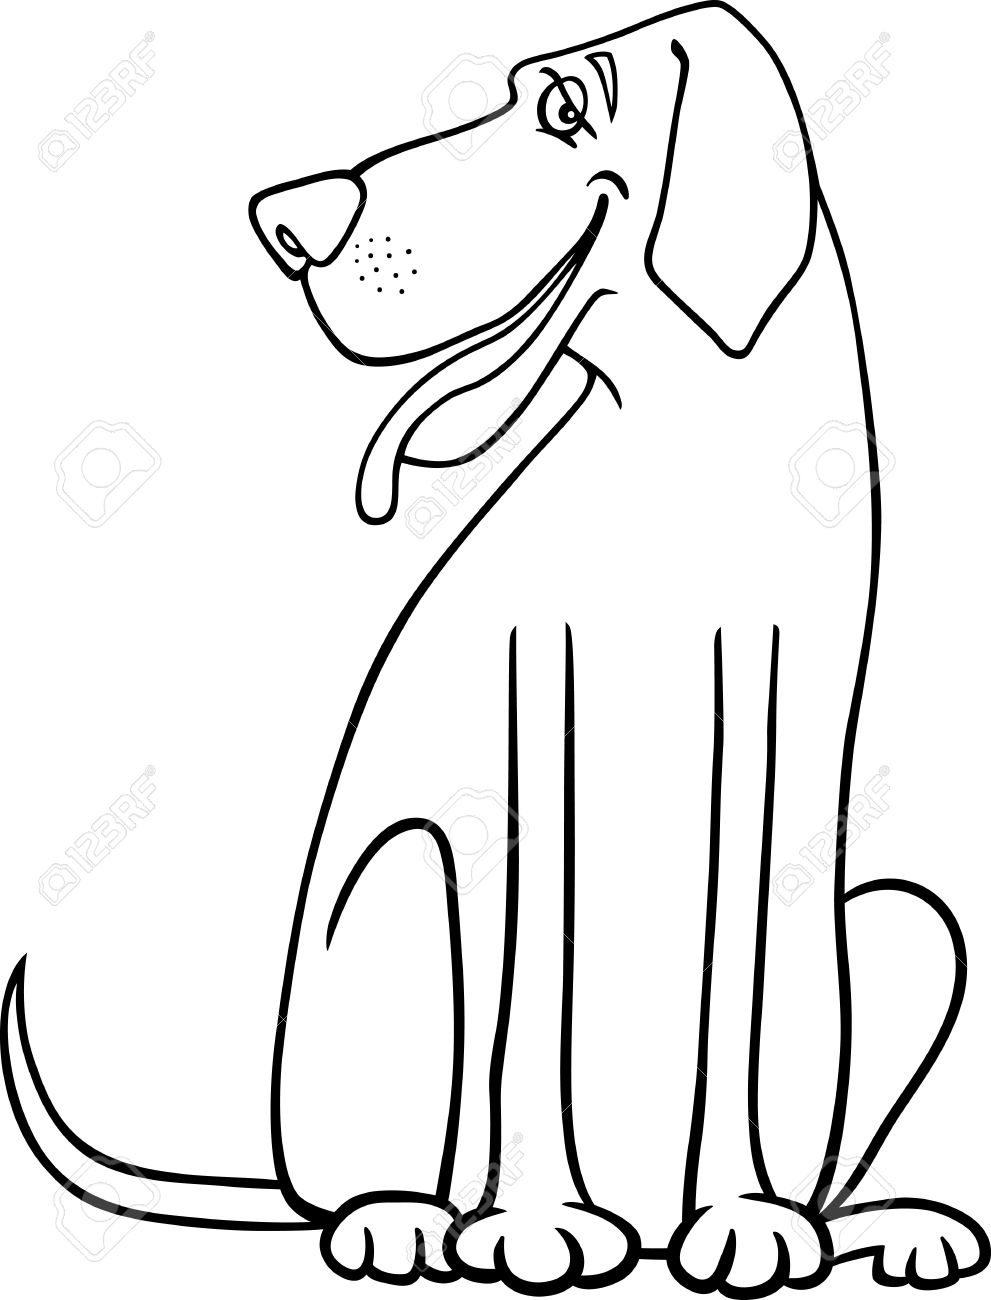 Black and White Cartoon Illustration of Funny Great Dane Dog for Coloring Book or Coloring Page Stock Vector - 17087942